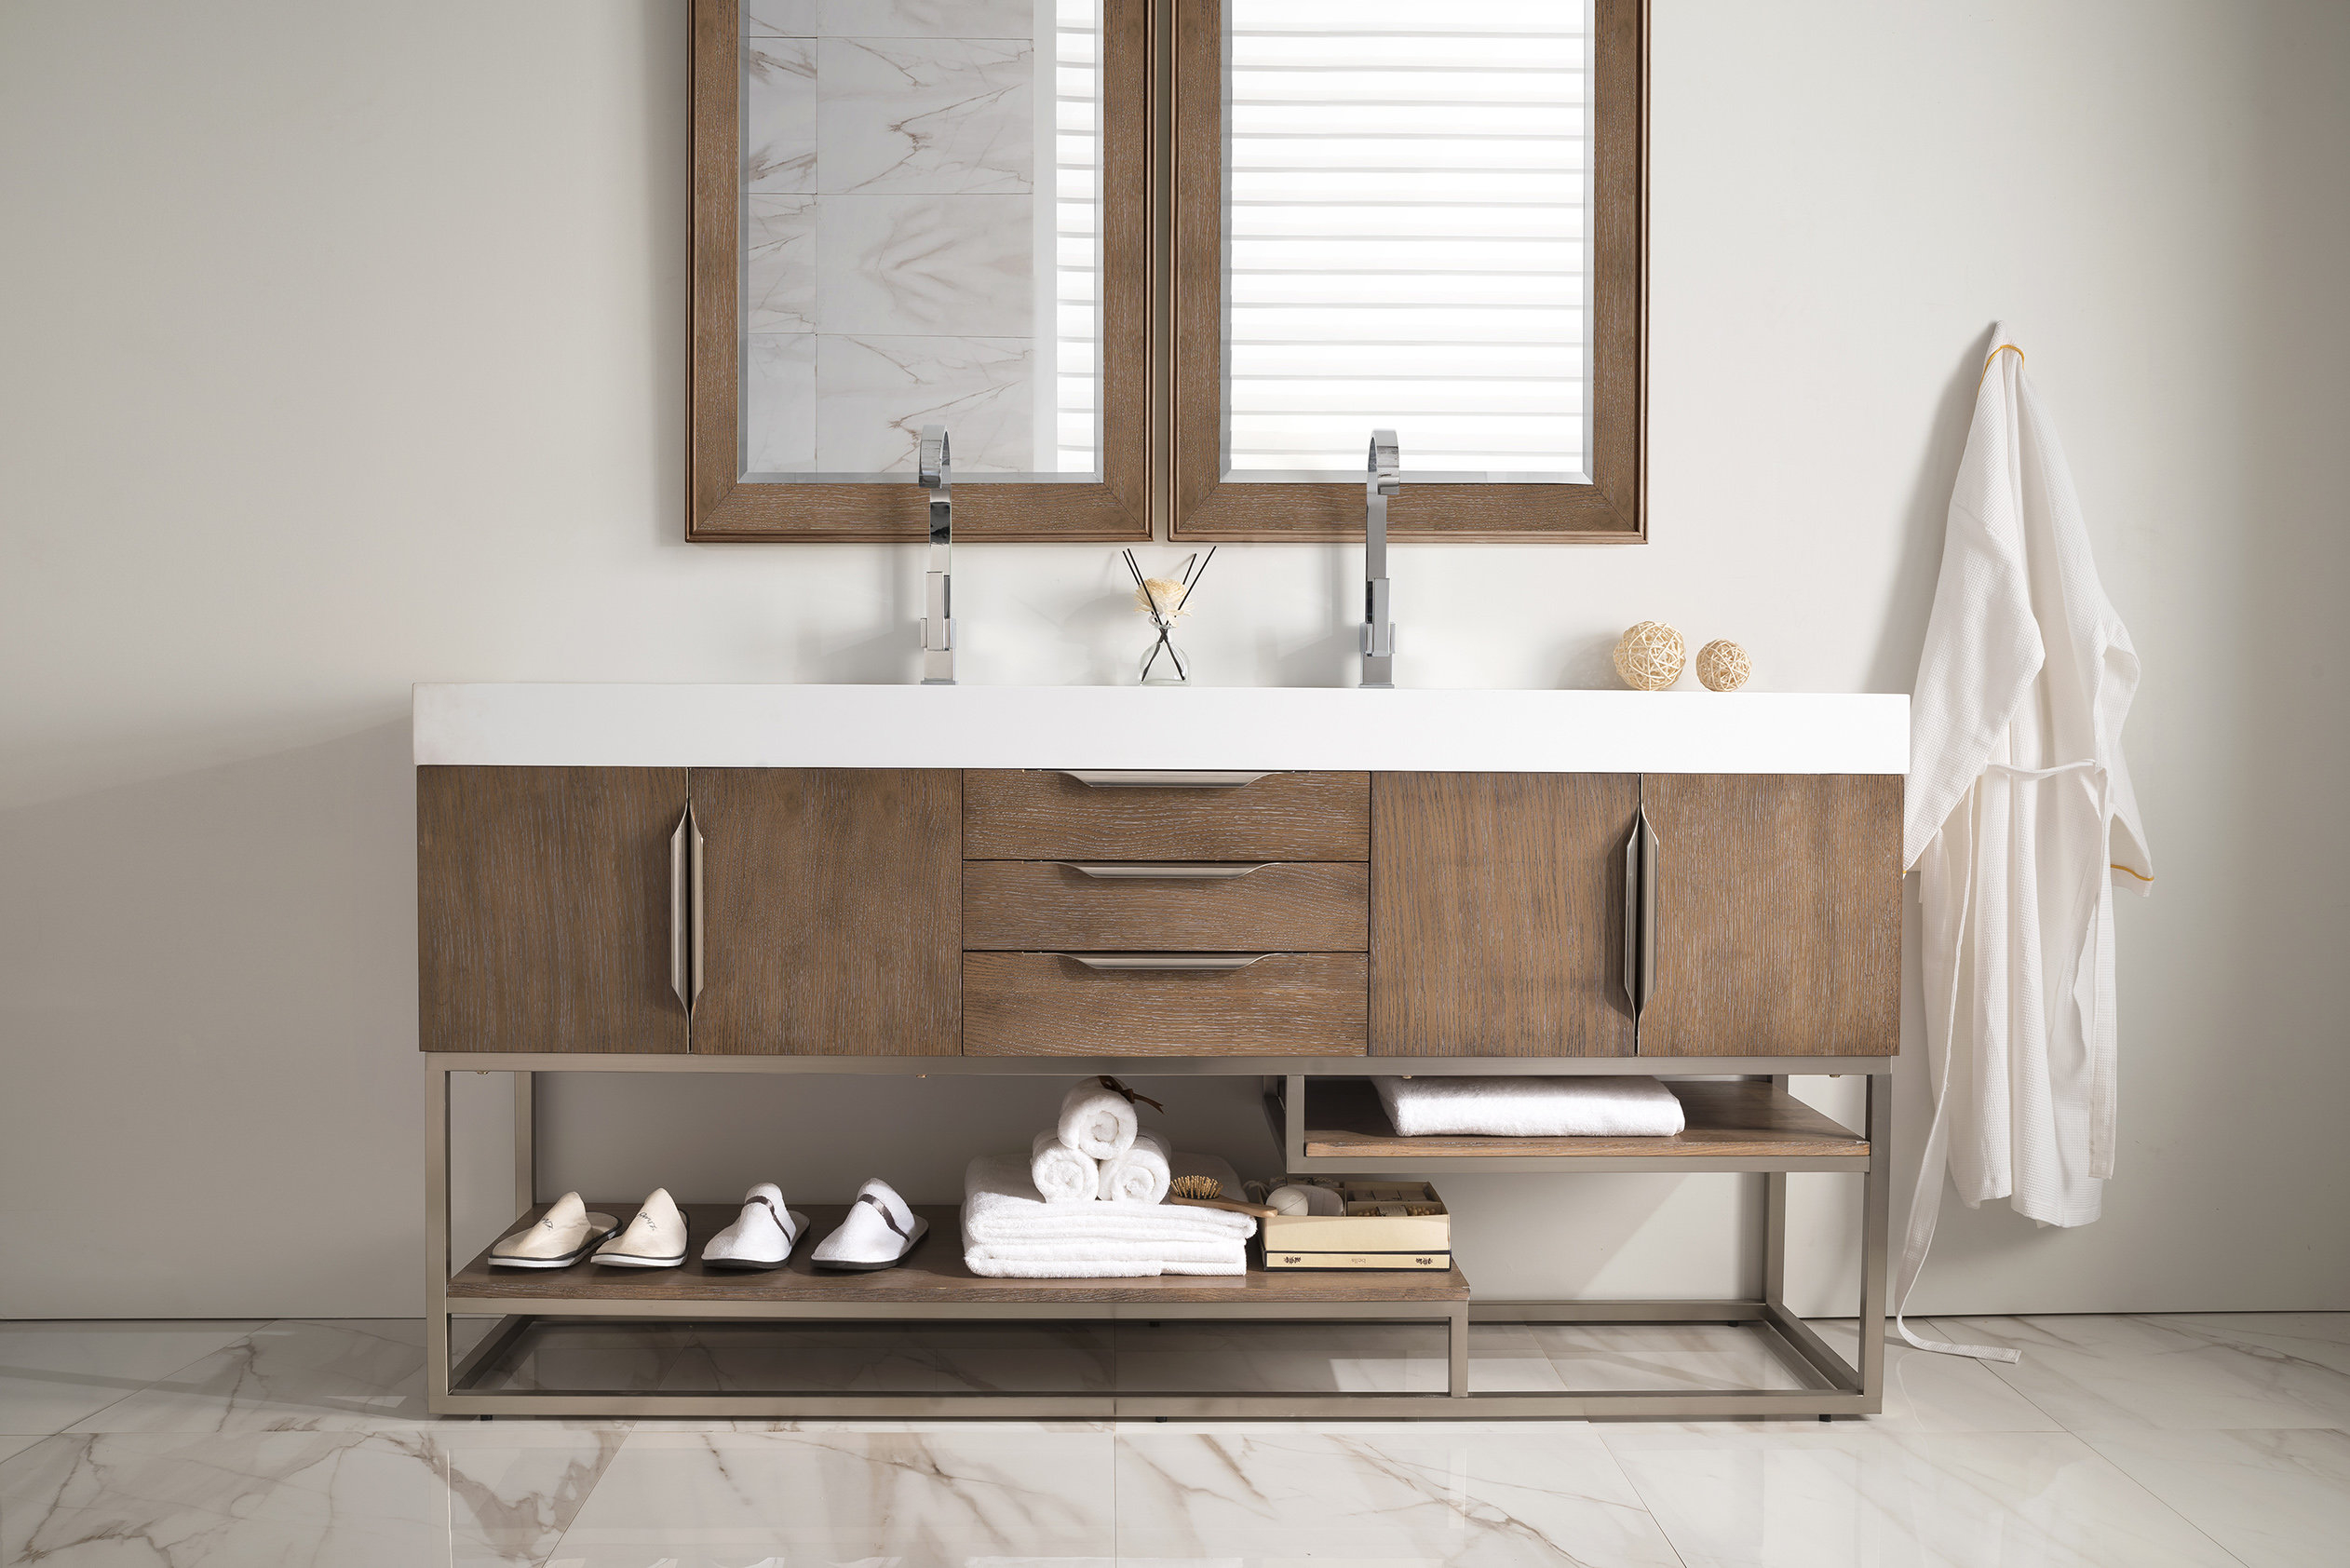 "Modular Brayden Studio Hulett 73"" Double Bathroom Vanity Set 